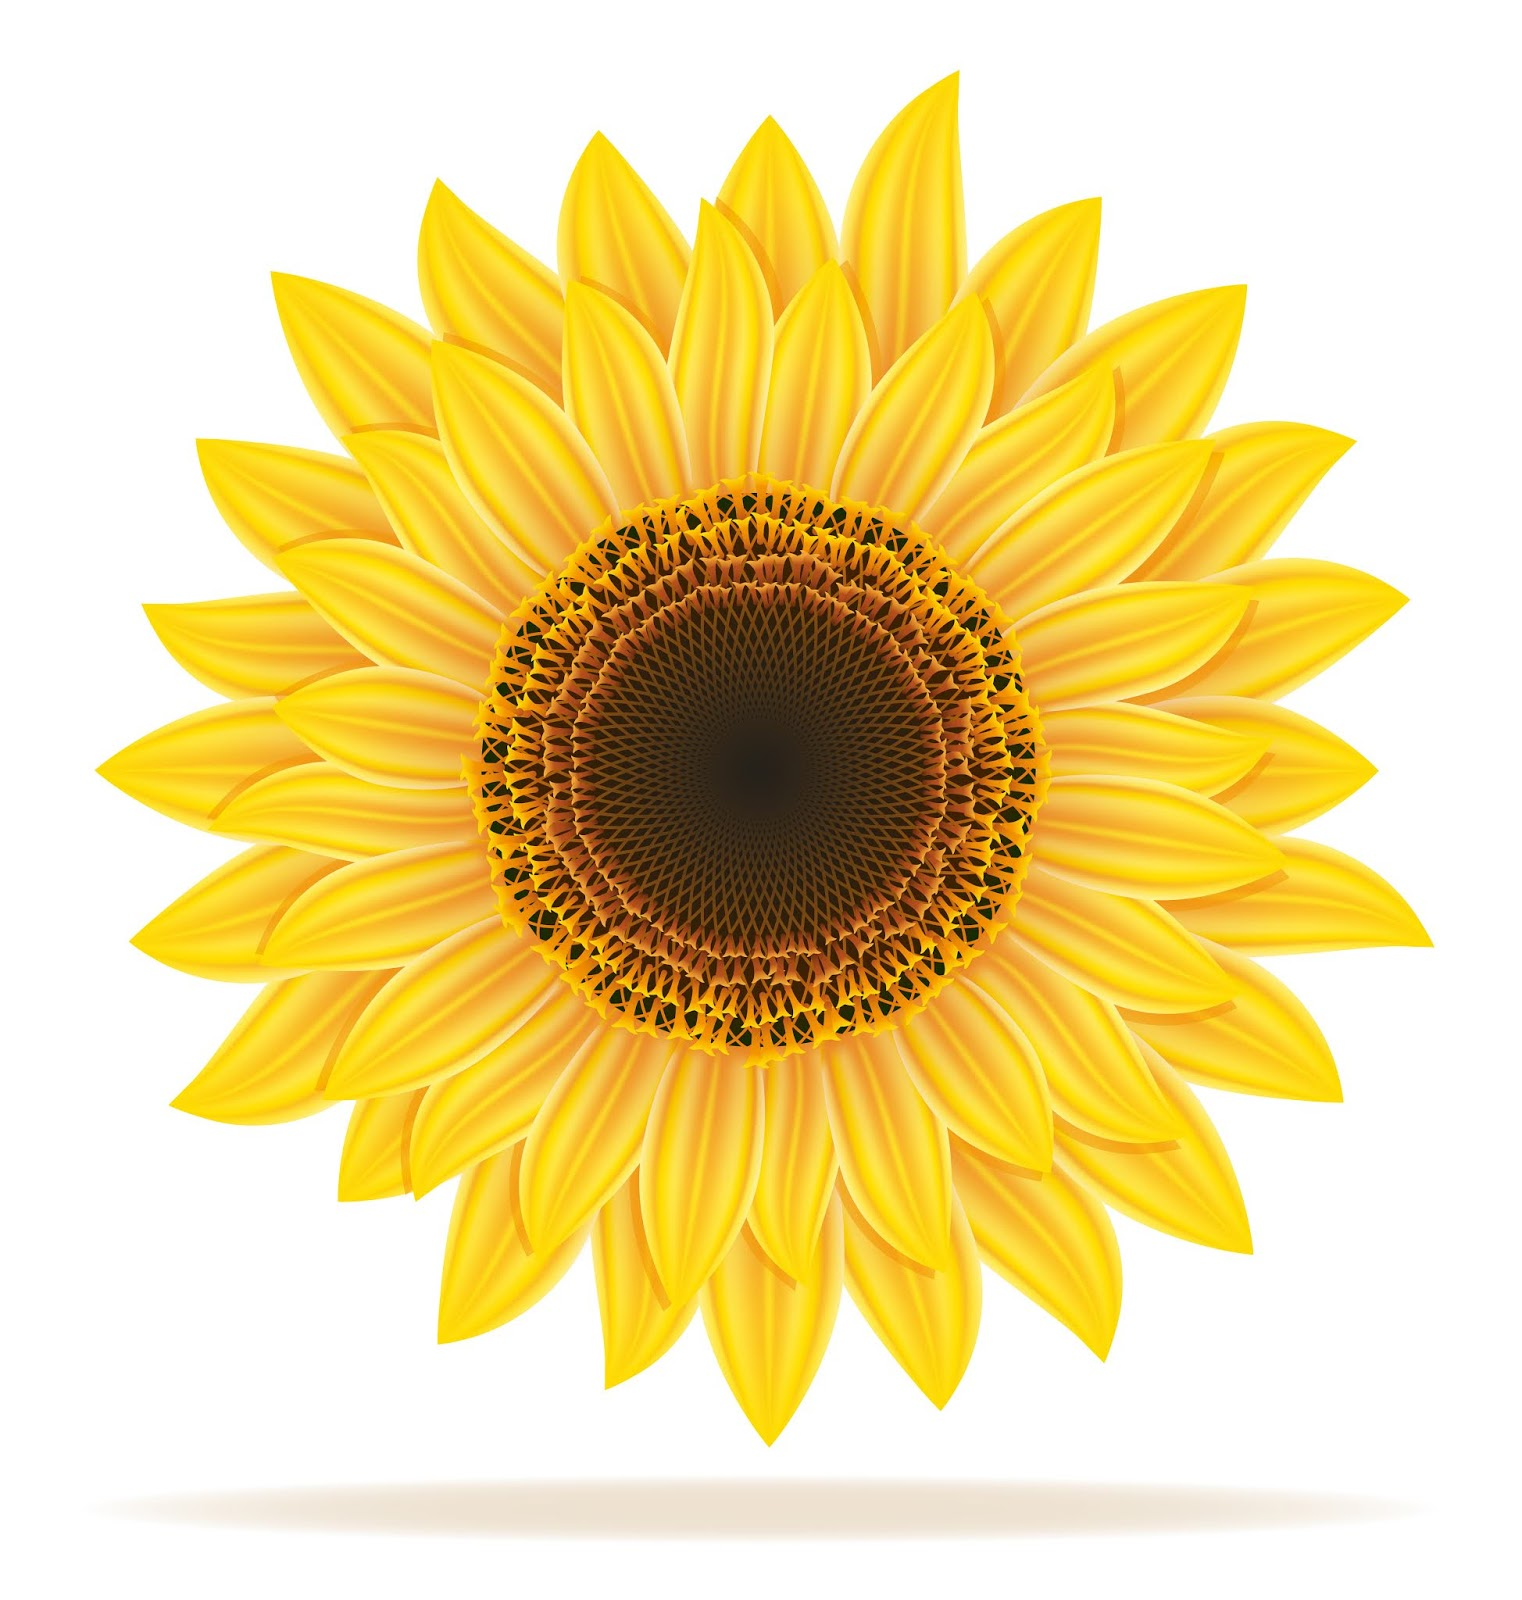 Sunflower Vector Illustration Free Download Vector CDR, AI, EPS and PNG Formats